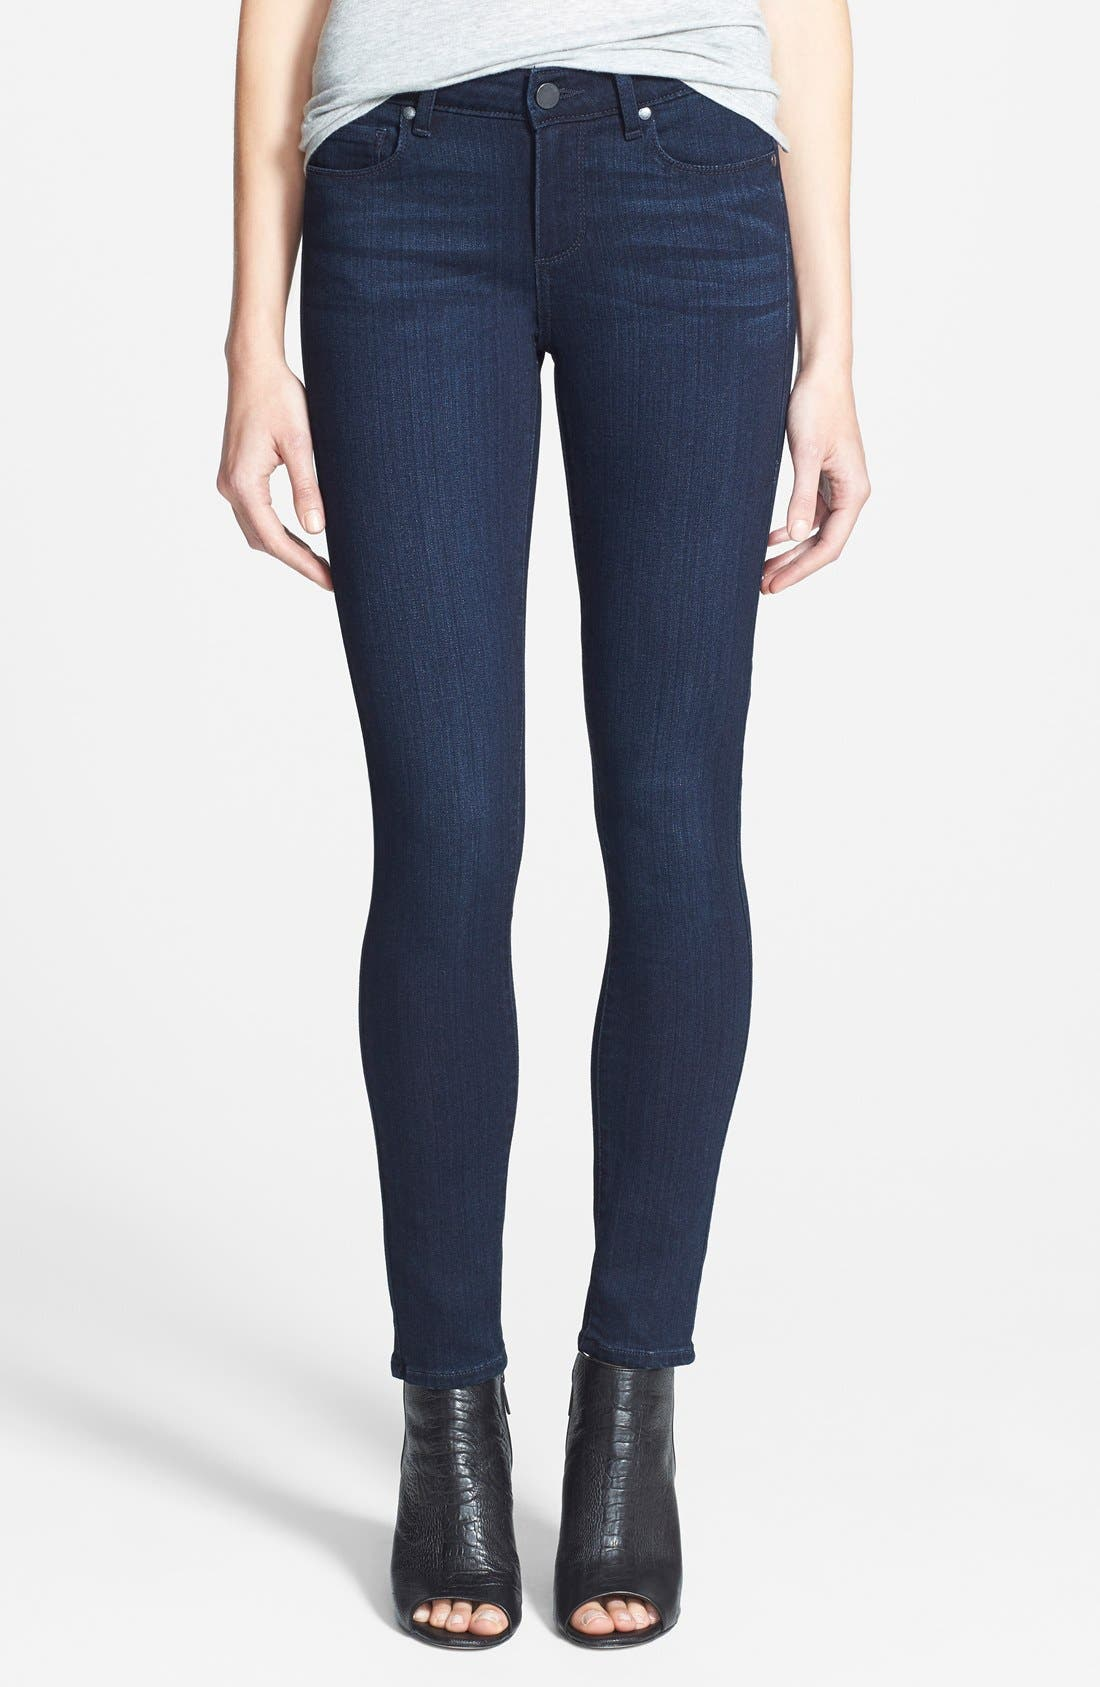 Alternate Image 1 Selected - PAIGE 'Transcend - Verdugo' Ankle Jeans (Mae)